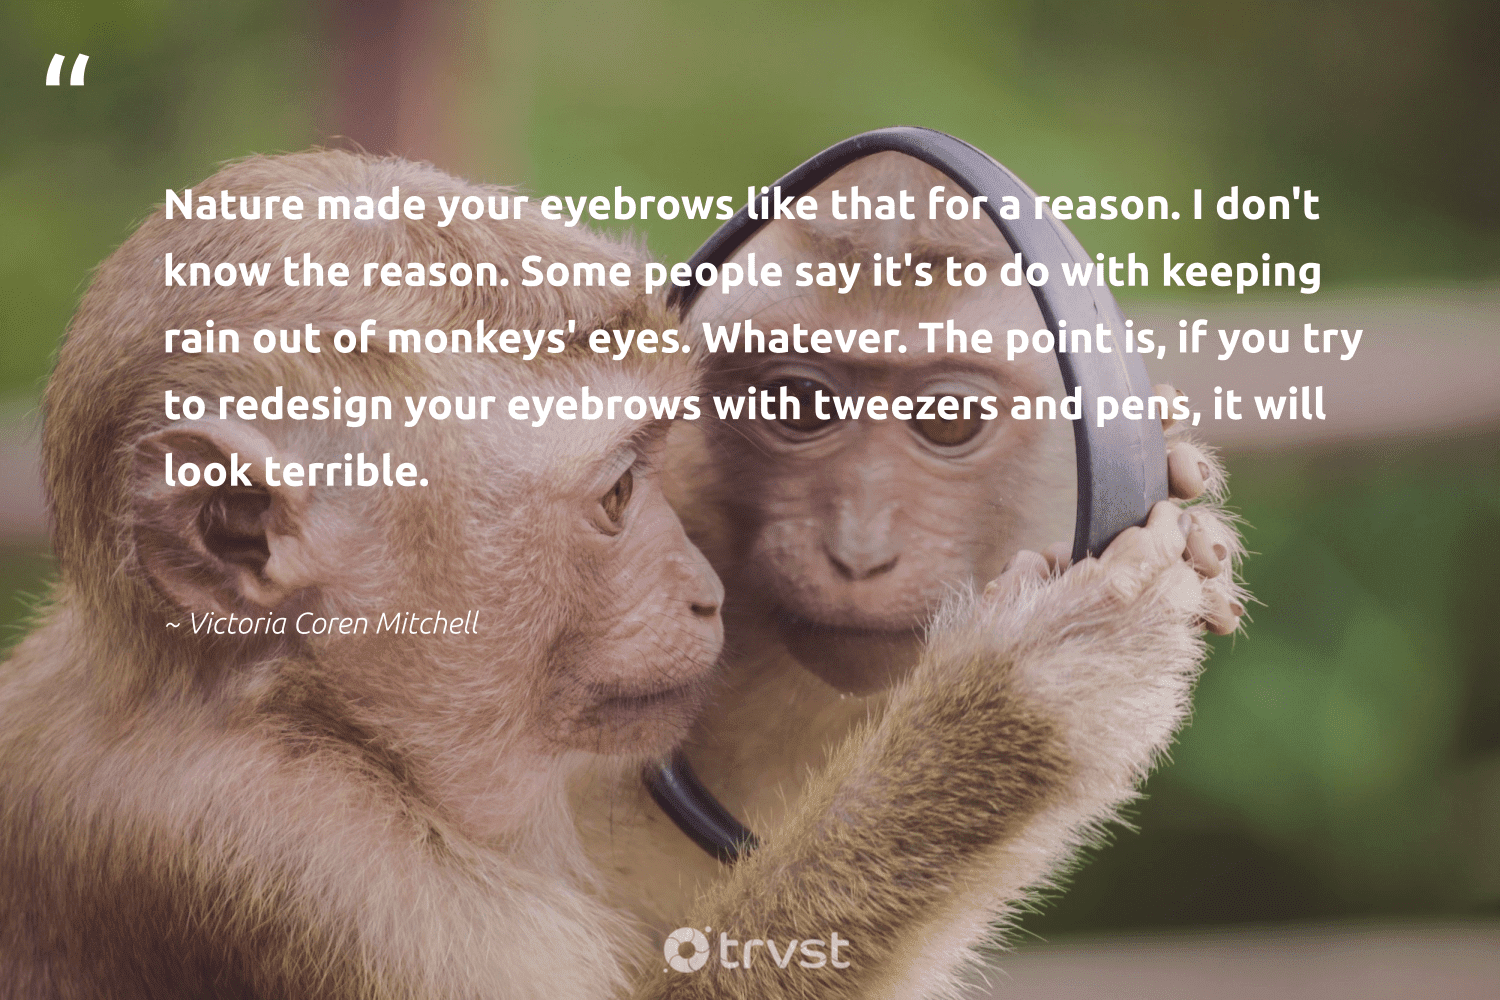 """Nature made your eyebrows like that for a reason. I don't know the reason. Some people say it's to do with keeping rain out of monkeys' eyes. Whatever. The point is, if you try to redesign your eyebrows with tweezers and pens, it will look terrible.""  - Victoria Coren Mitchell #trvst #quotes #nature #monkeys #earth #monkey #wildernessnation #dosomething #conservation #perfectnature #sustainable #changetheworld"